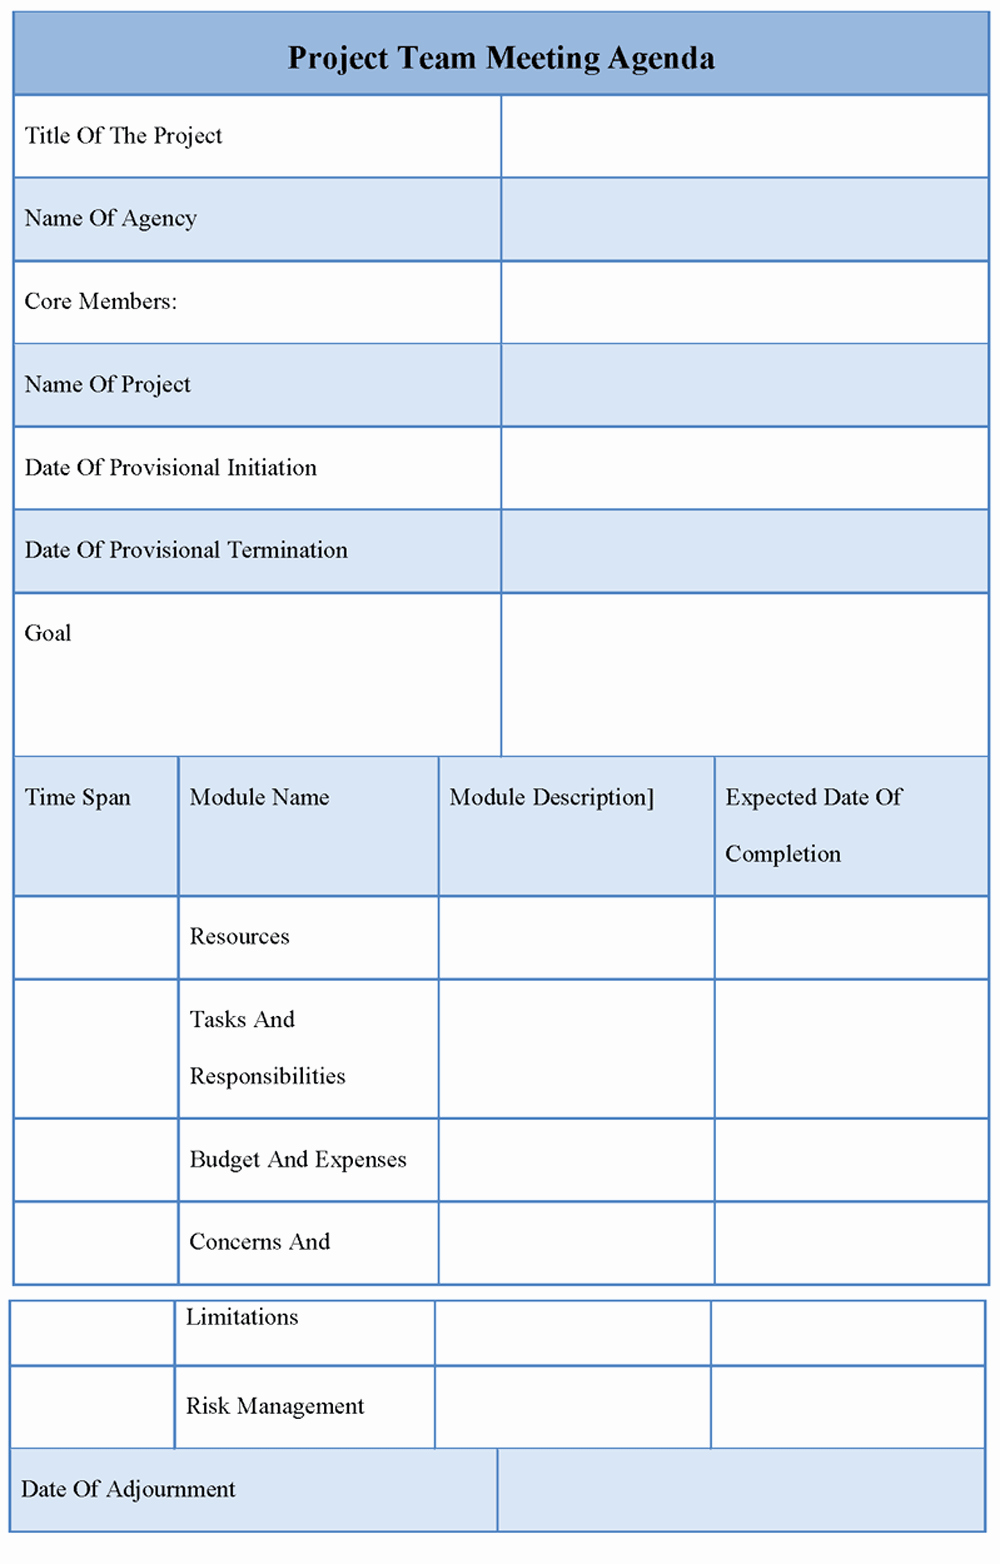 Project Team Meeting Agenda Template Lovely Agenda Template for Project Team Meeting Template Of